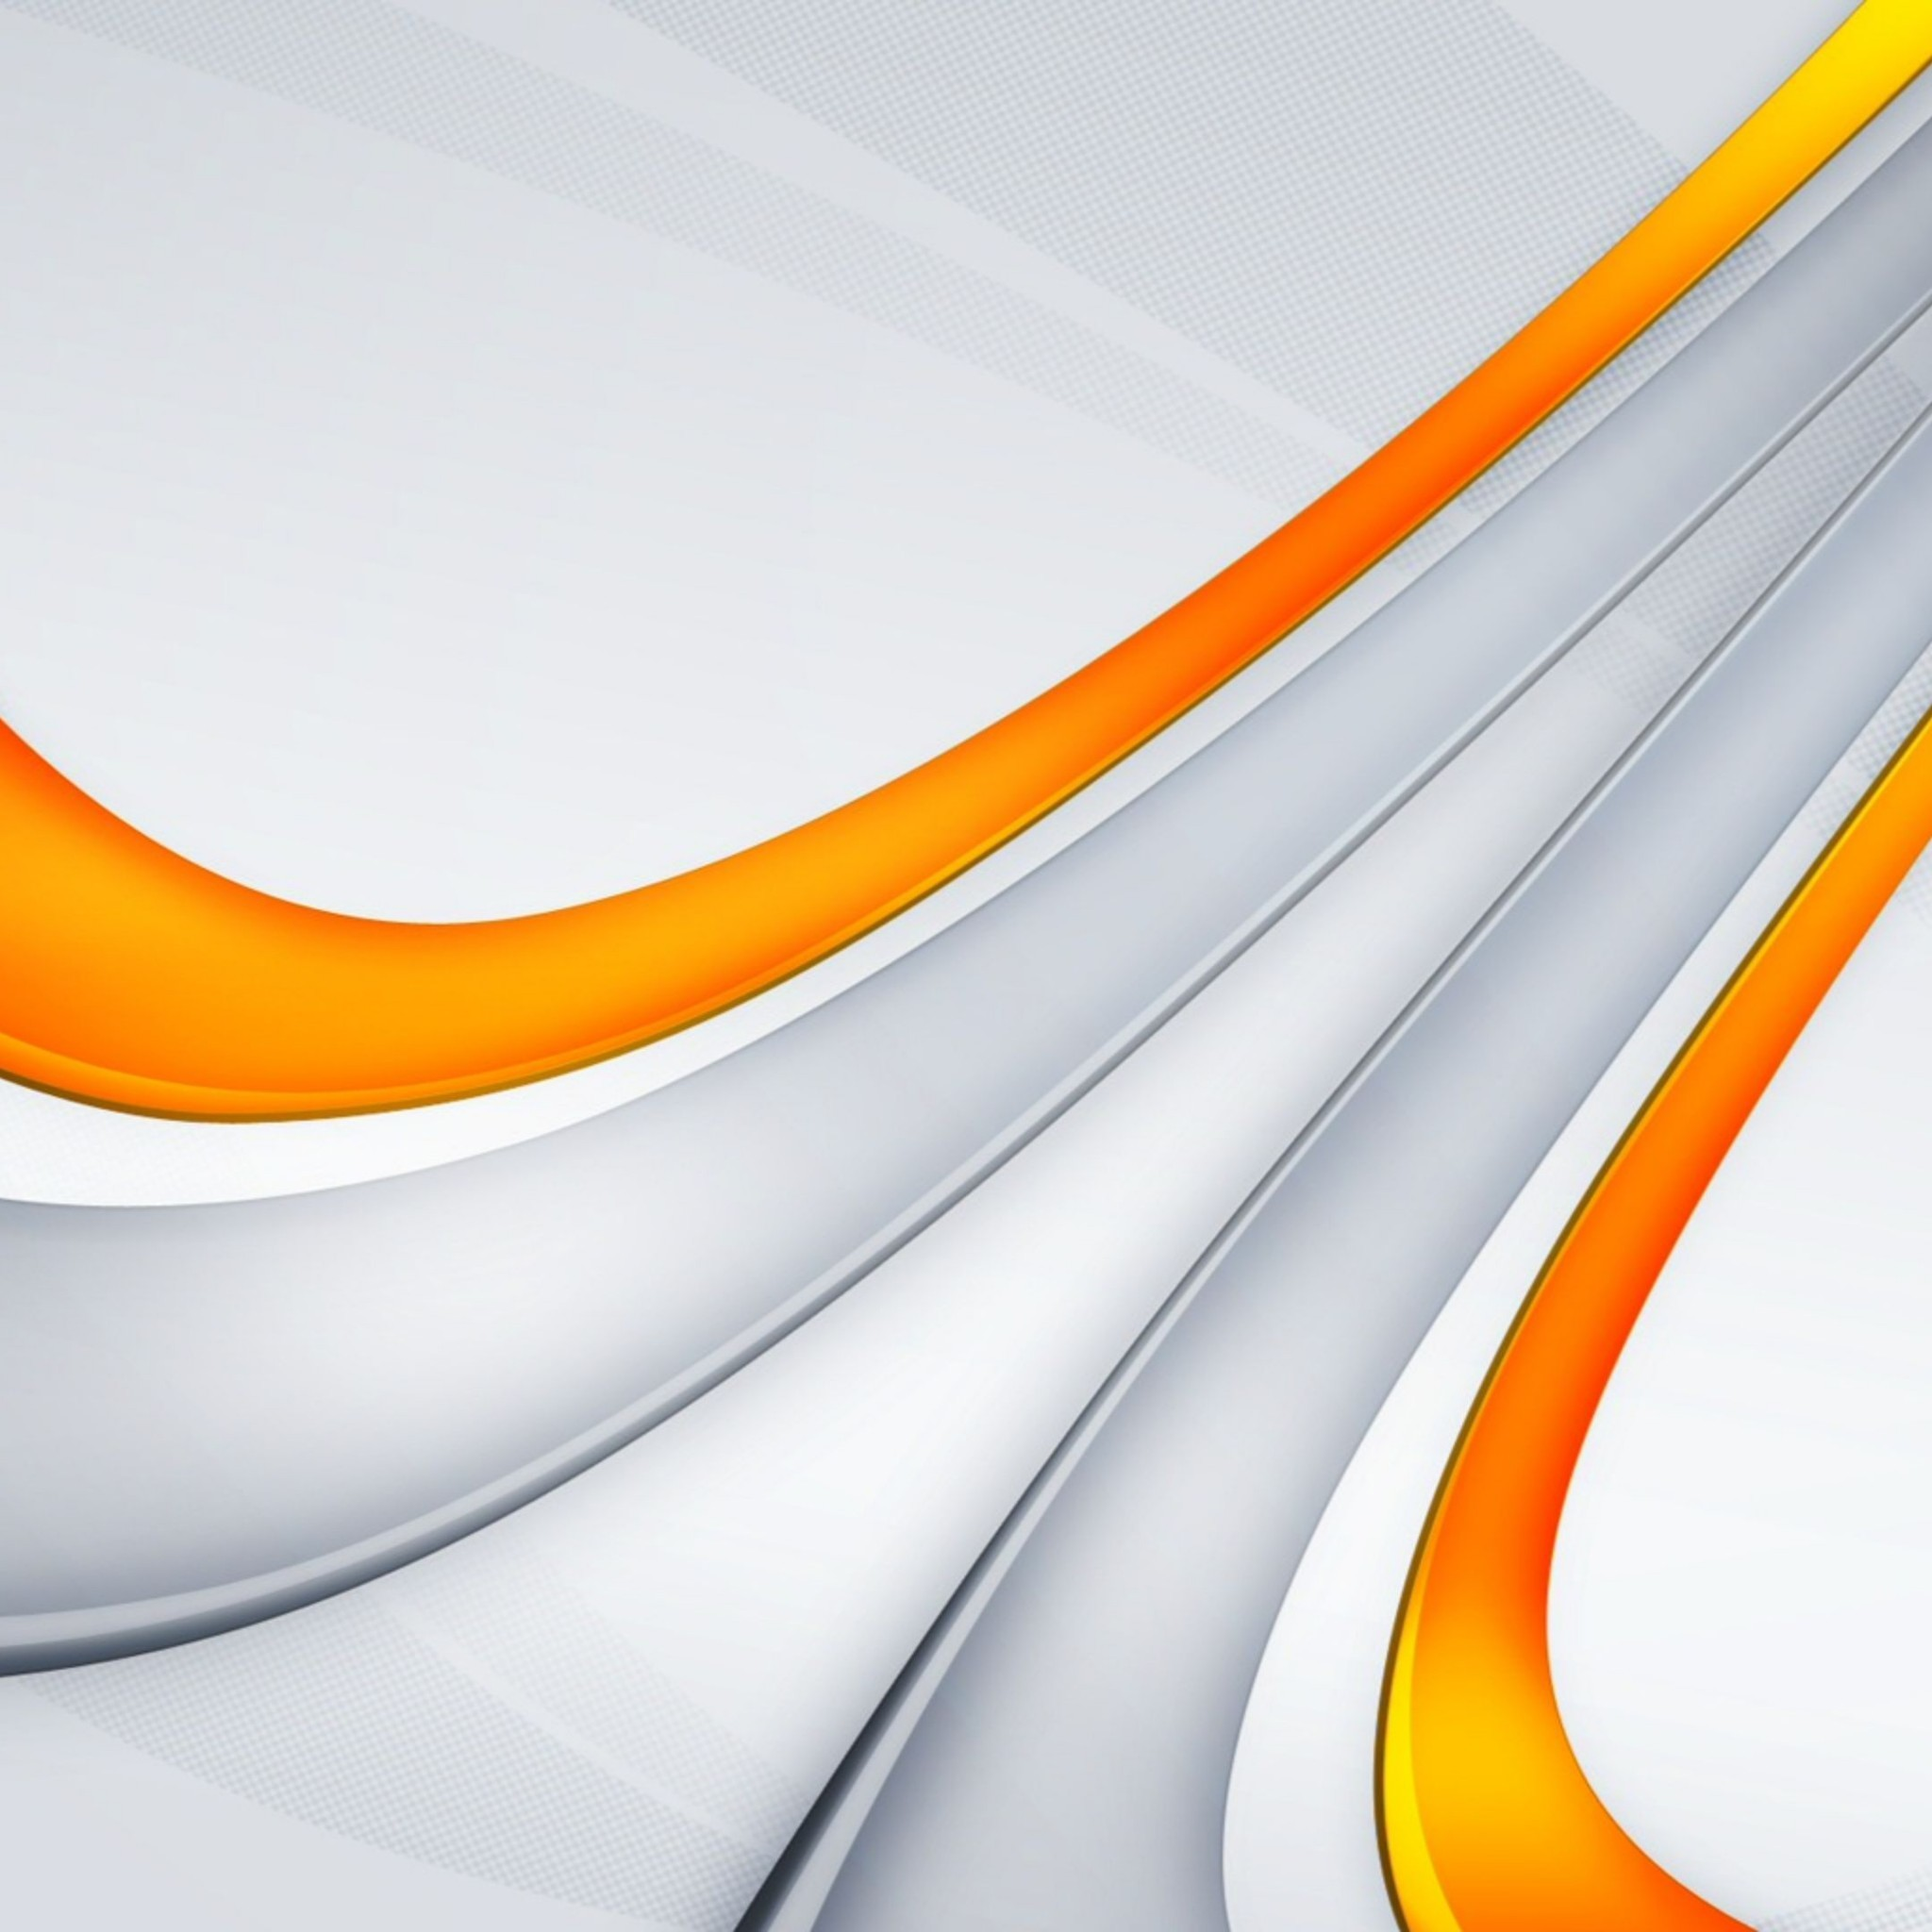 Related to Orange to Grey 4K Abstract Wallpapers